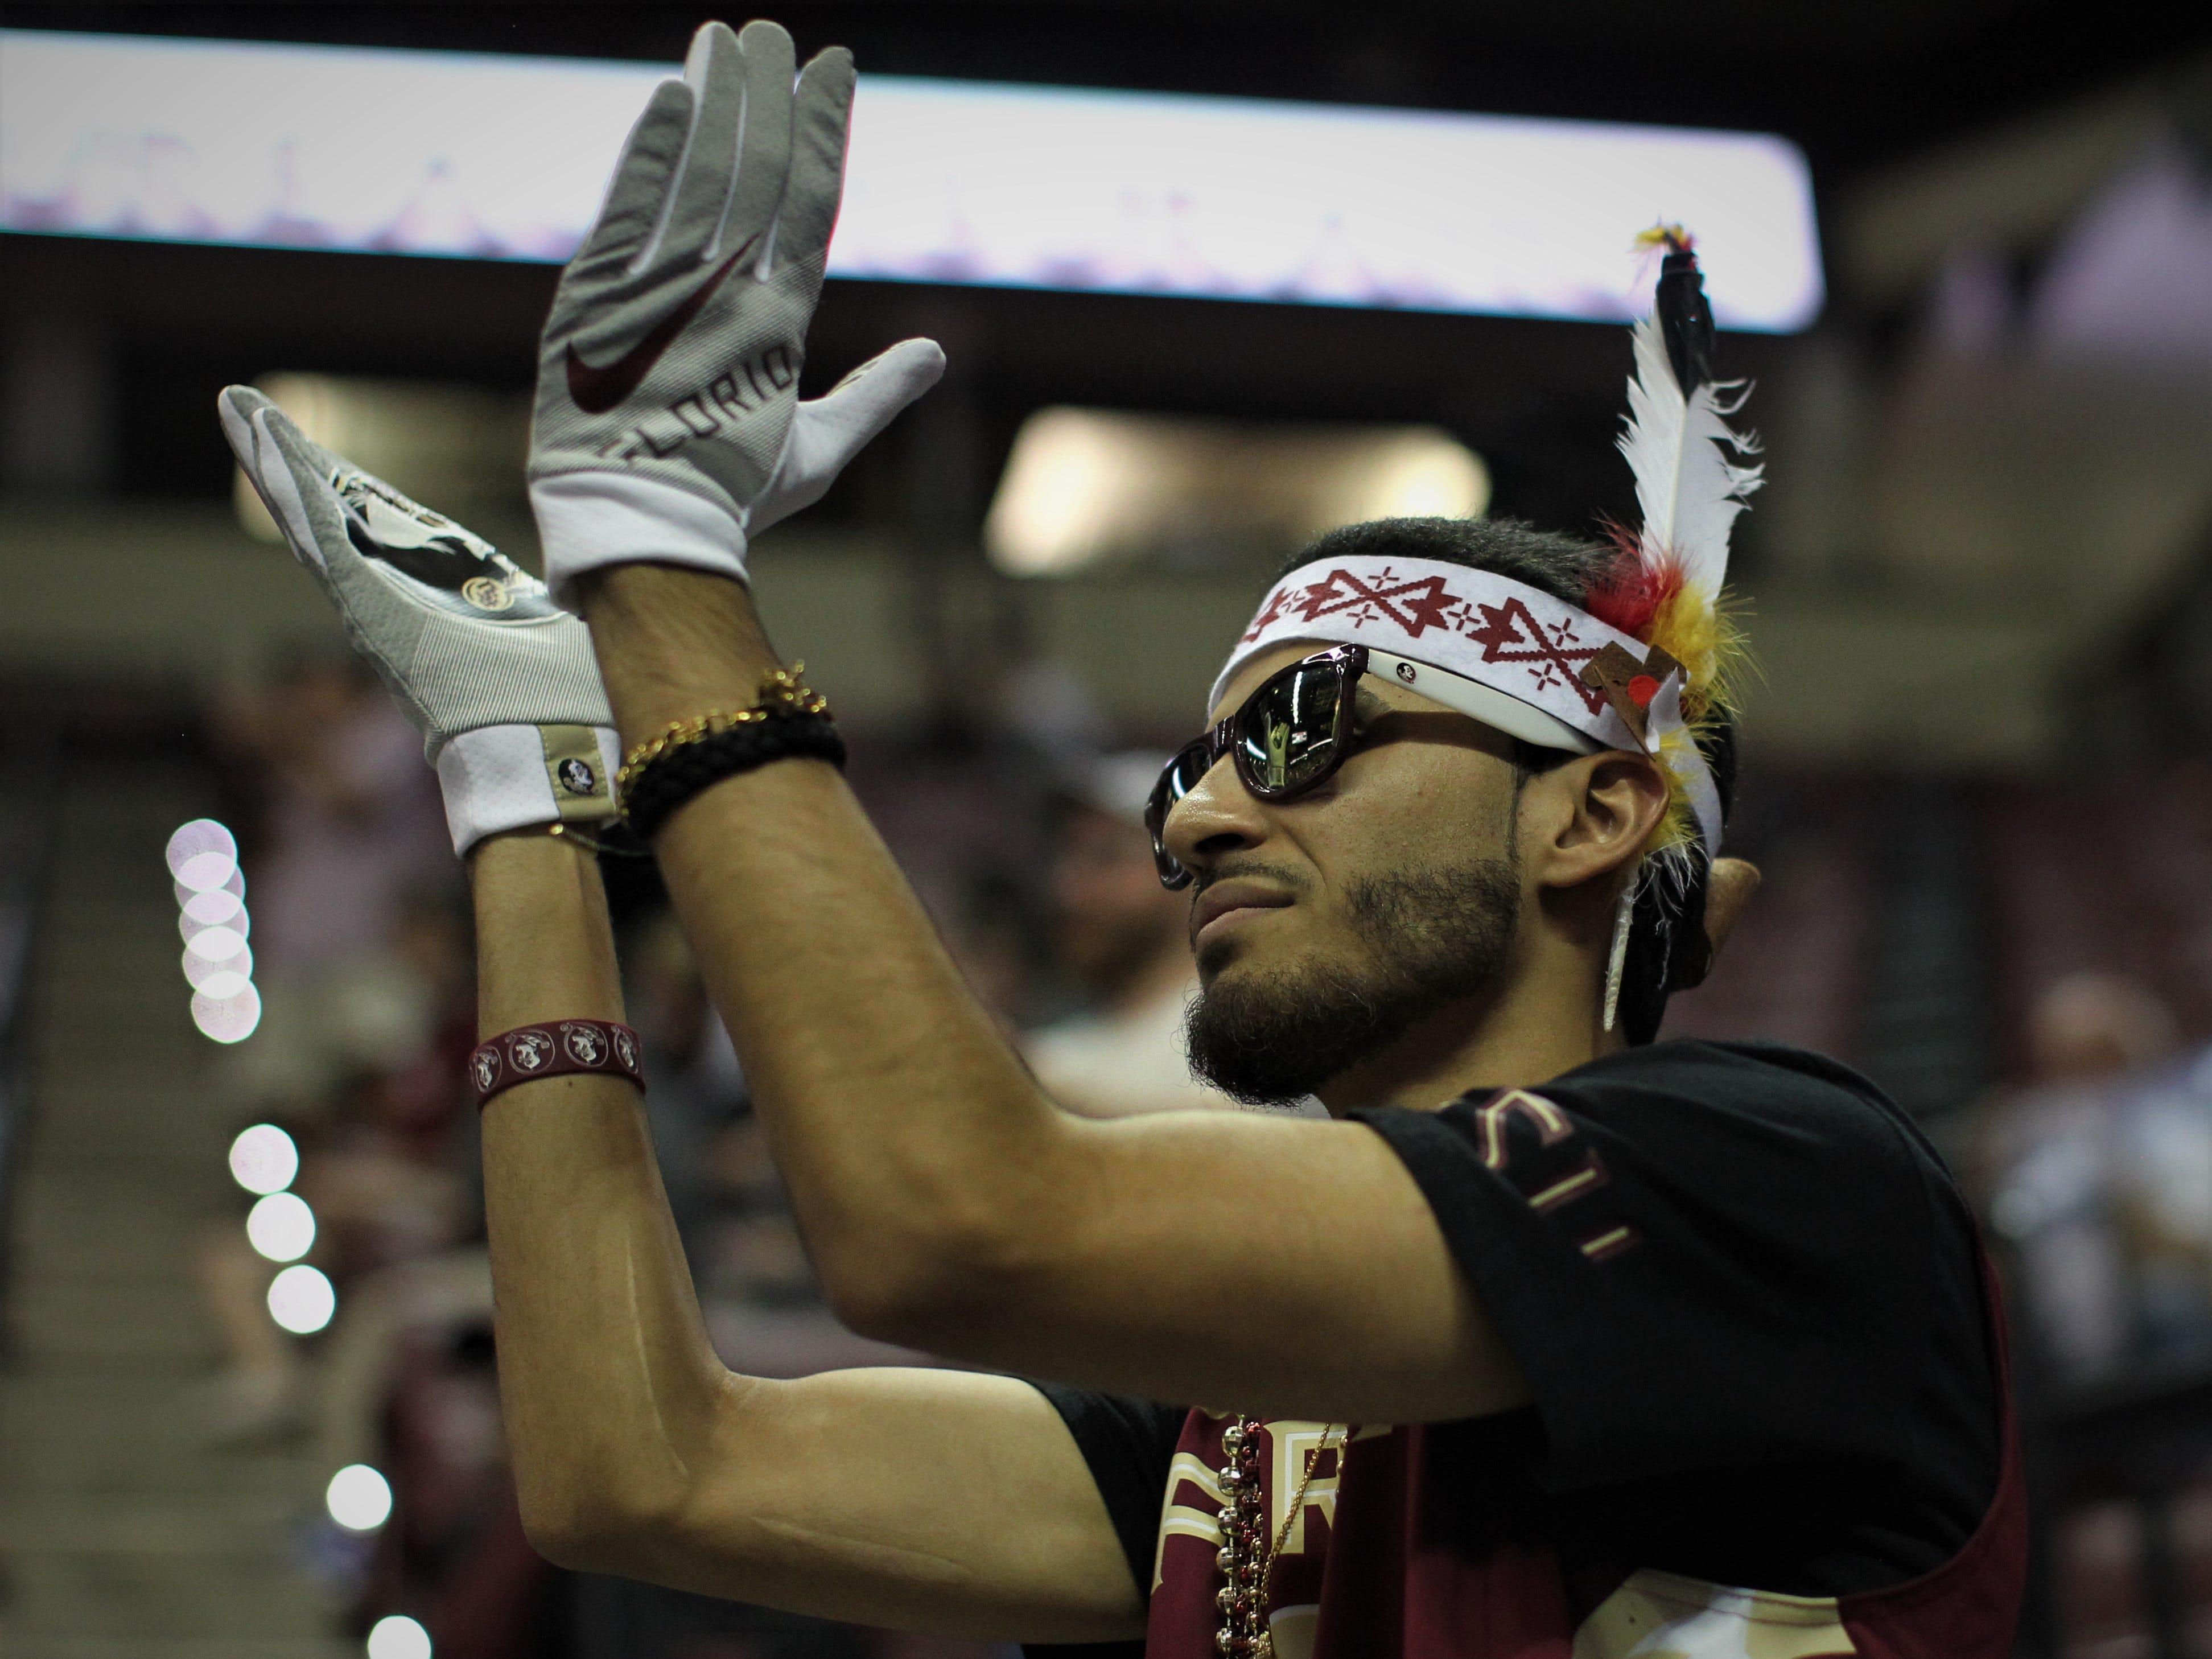 An FSU fan cheers a blowout win over Florida during the Sunshine Showdown game Tuesday at the Tucker Civic Center.